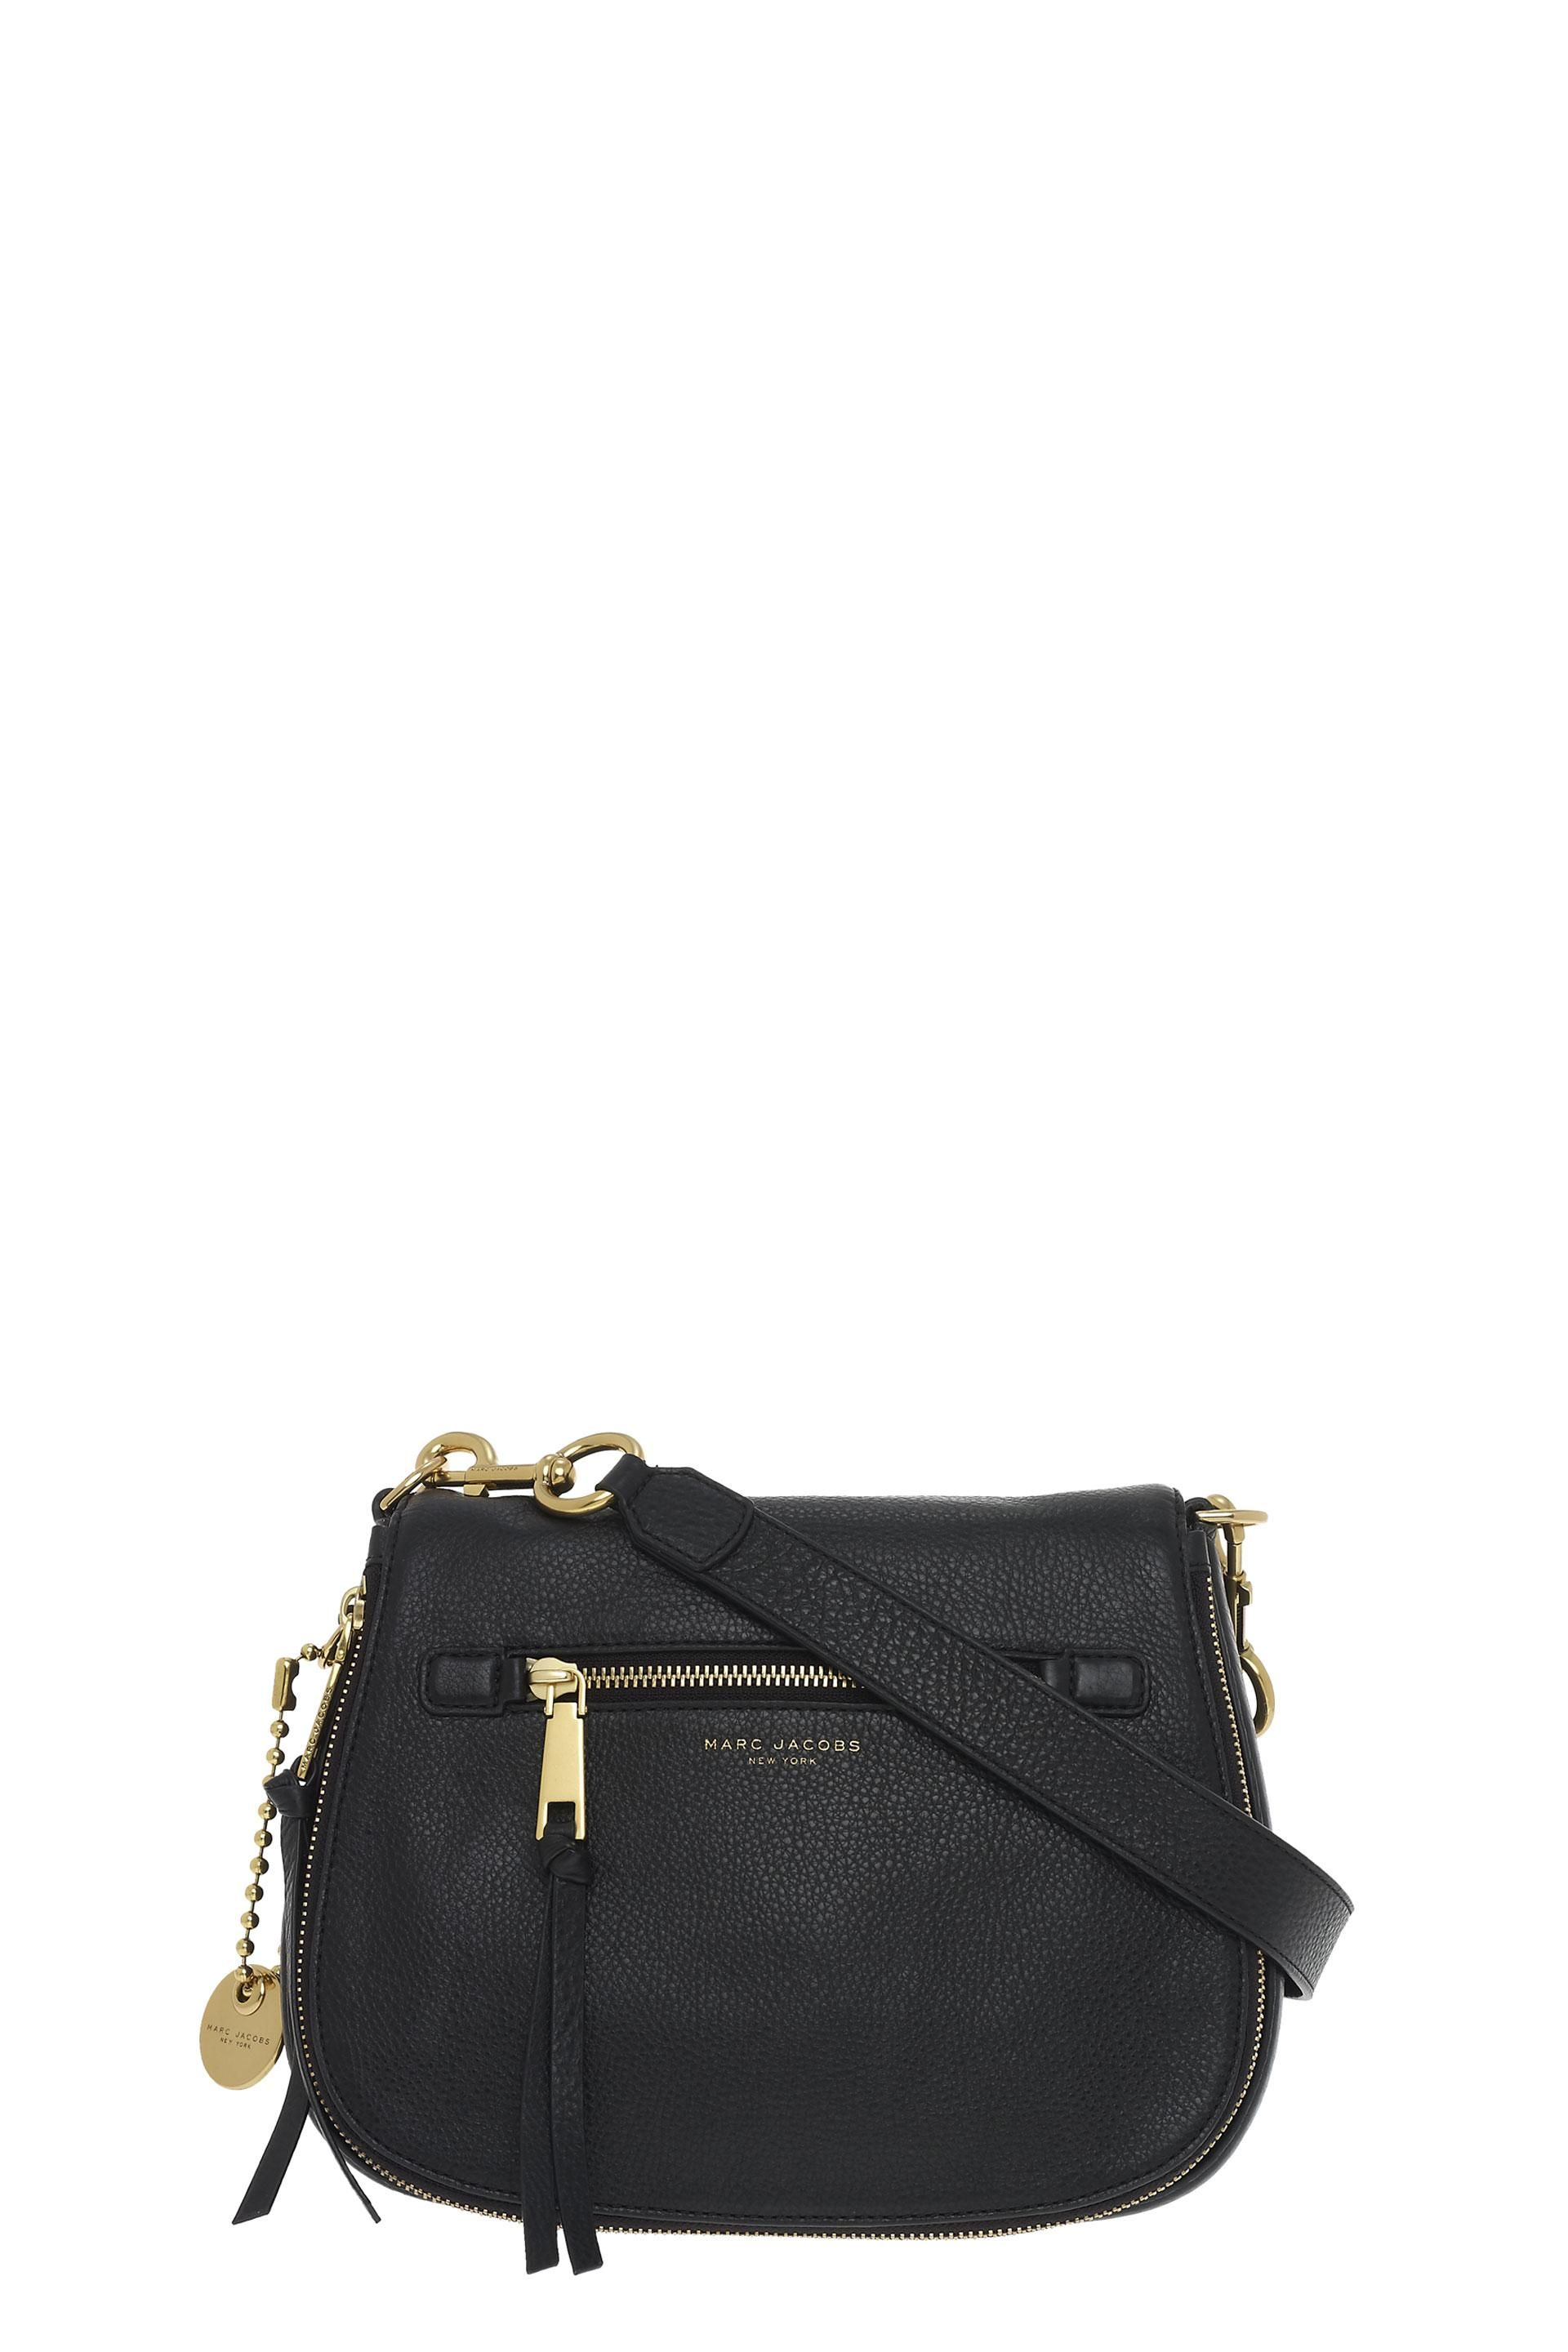 MARC JACOBS Recruit Saddle Bag.  marcjacobs  bags  shoulder bags  leather   polyester  crossbody  lining cc7e634bcd5e